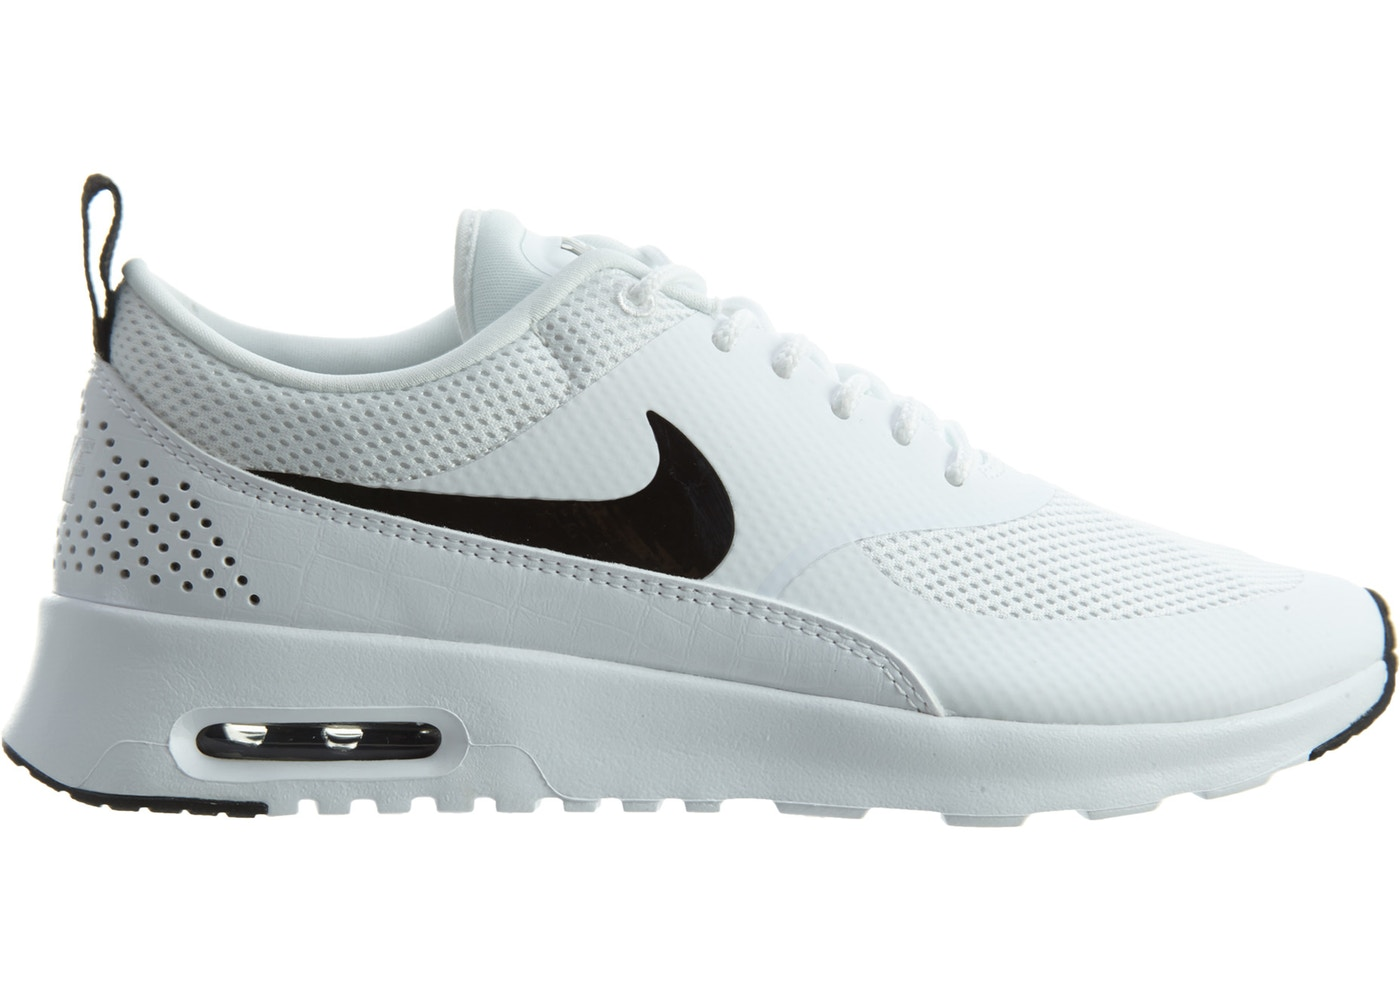 005b9ec20f6883 Air Max Thea White Black (W) - 599409-103